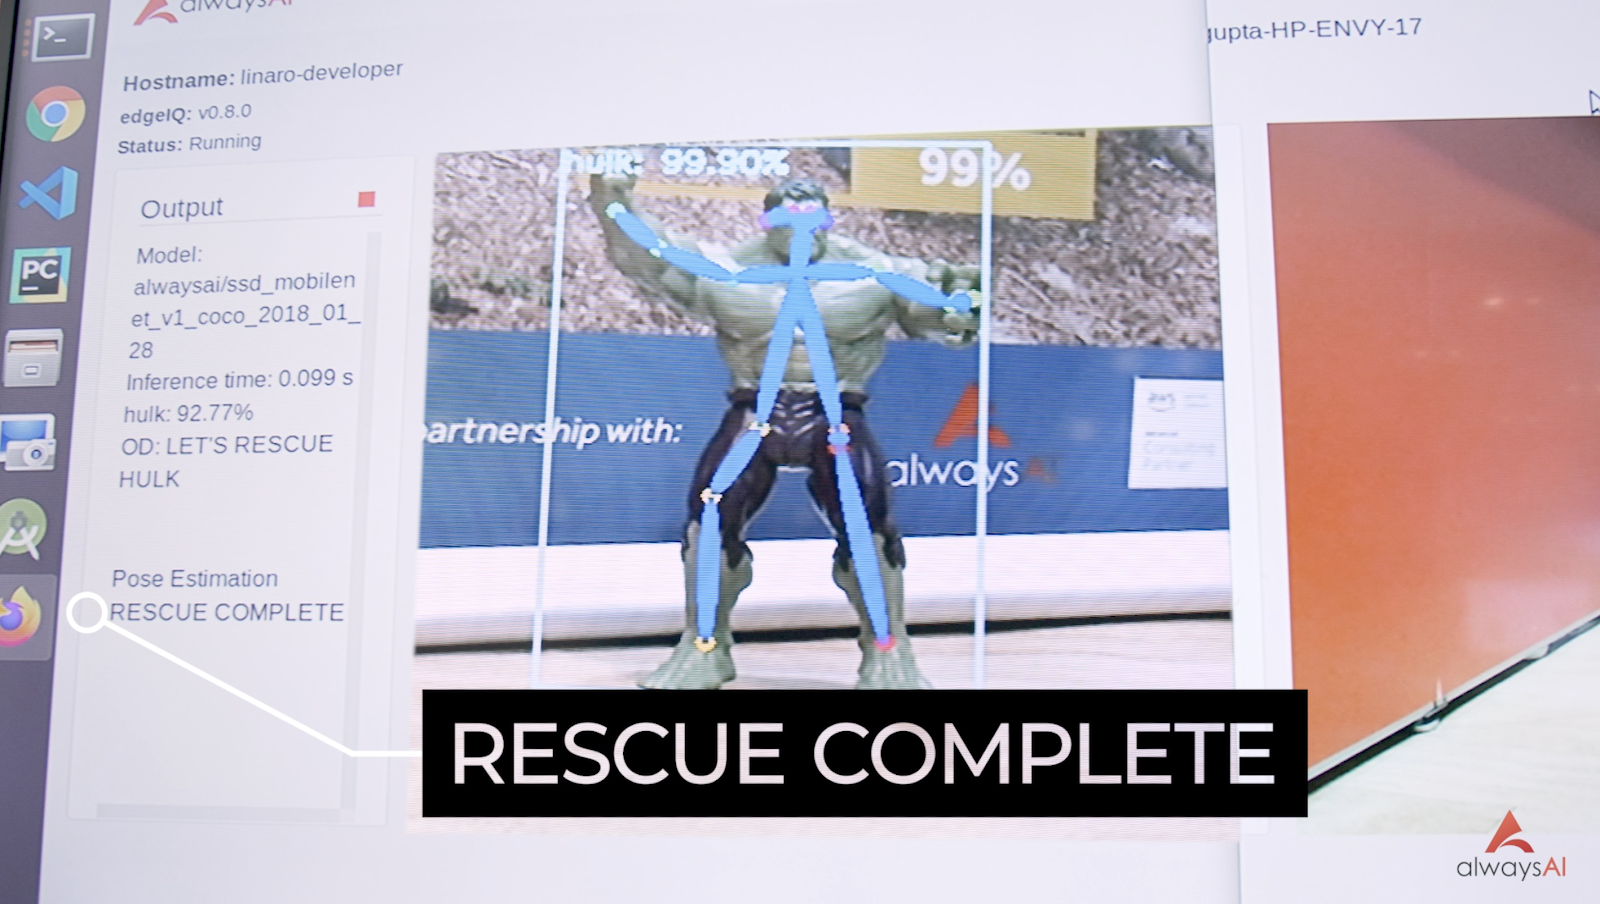 Pose estimation and object detection networks show Hulk has been rescued